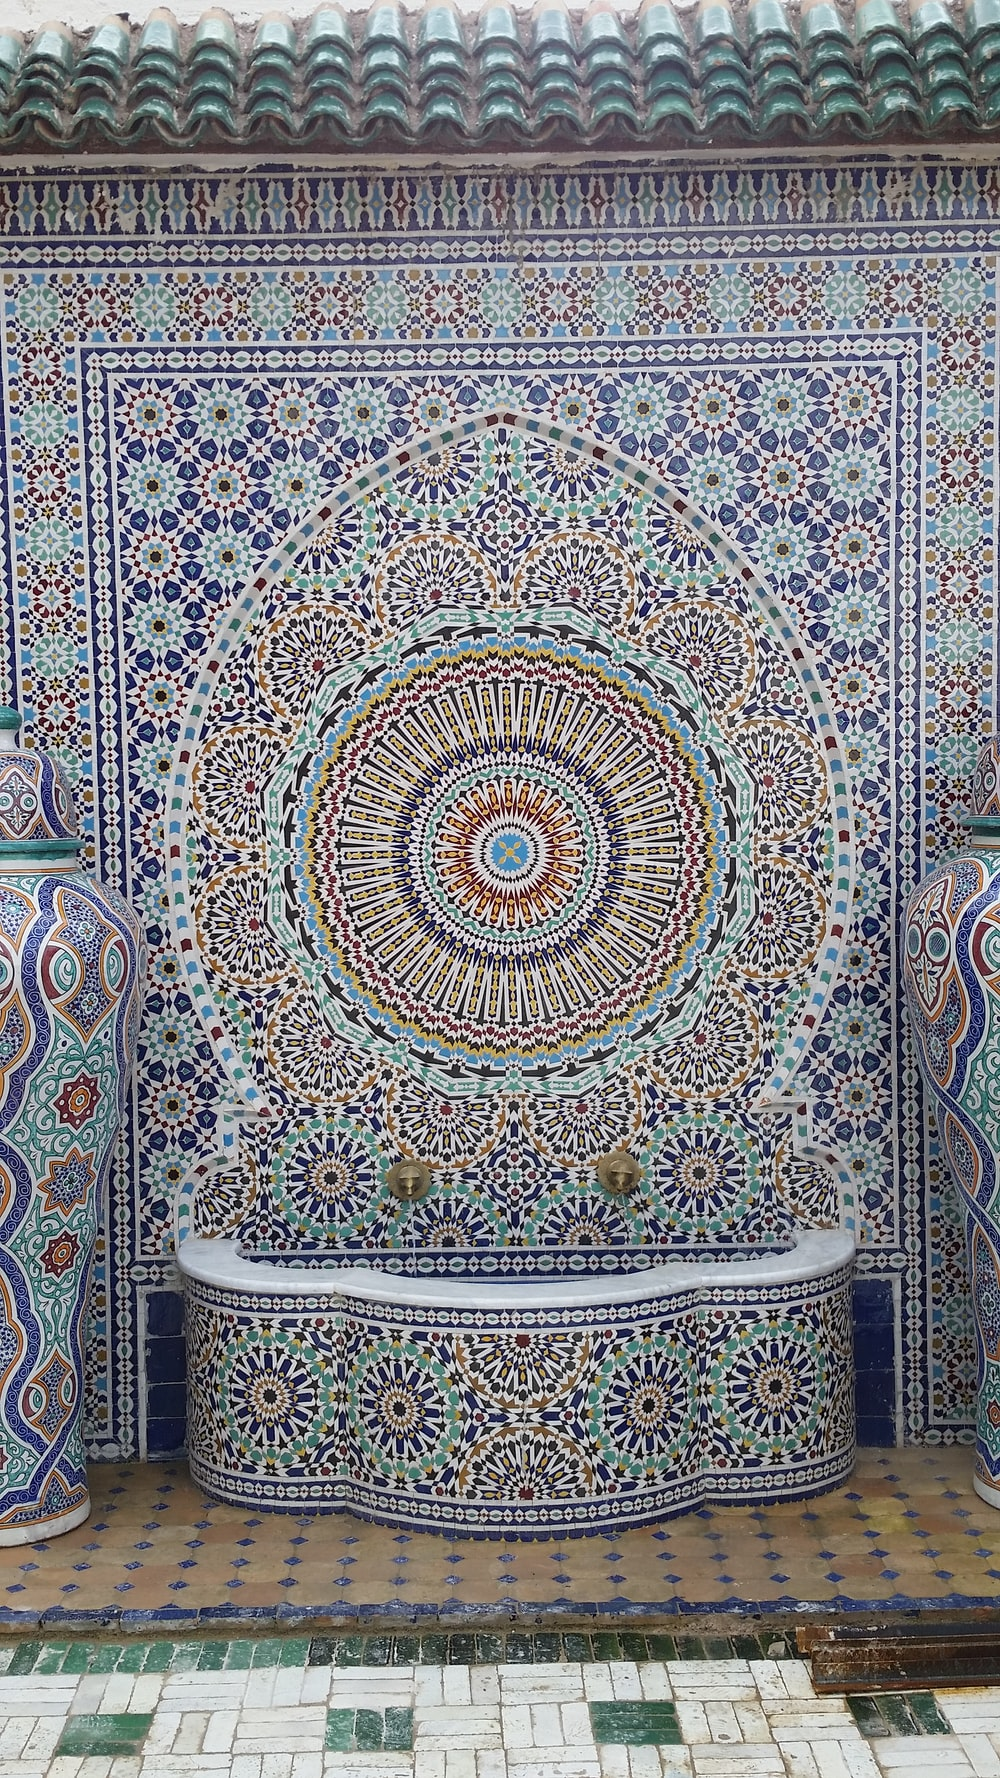 white, blue, and brown floral tiled fountain outside of building